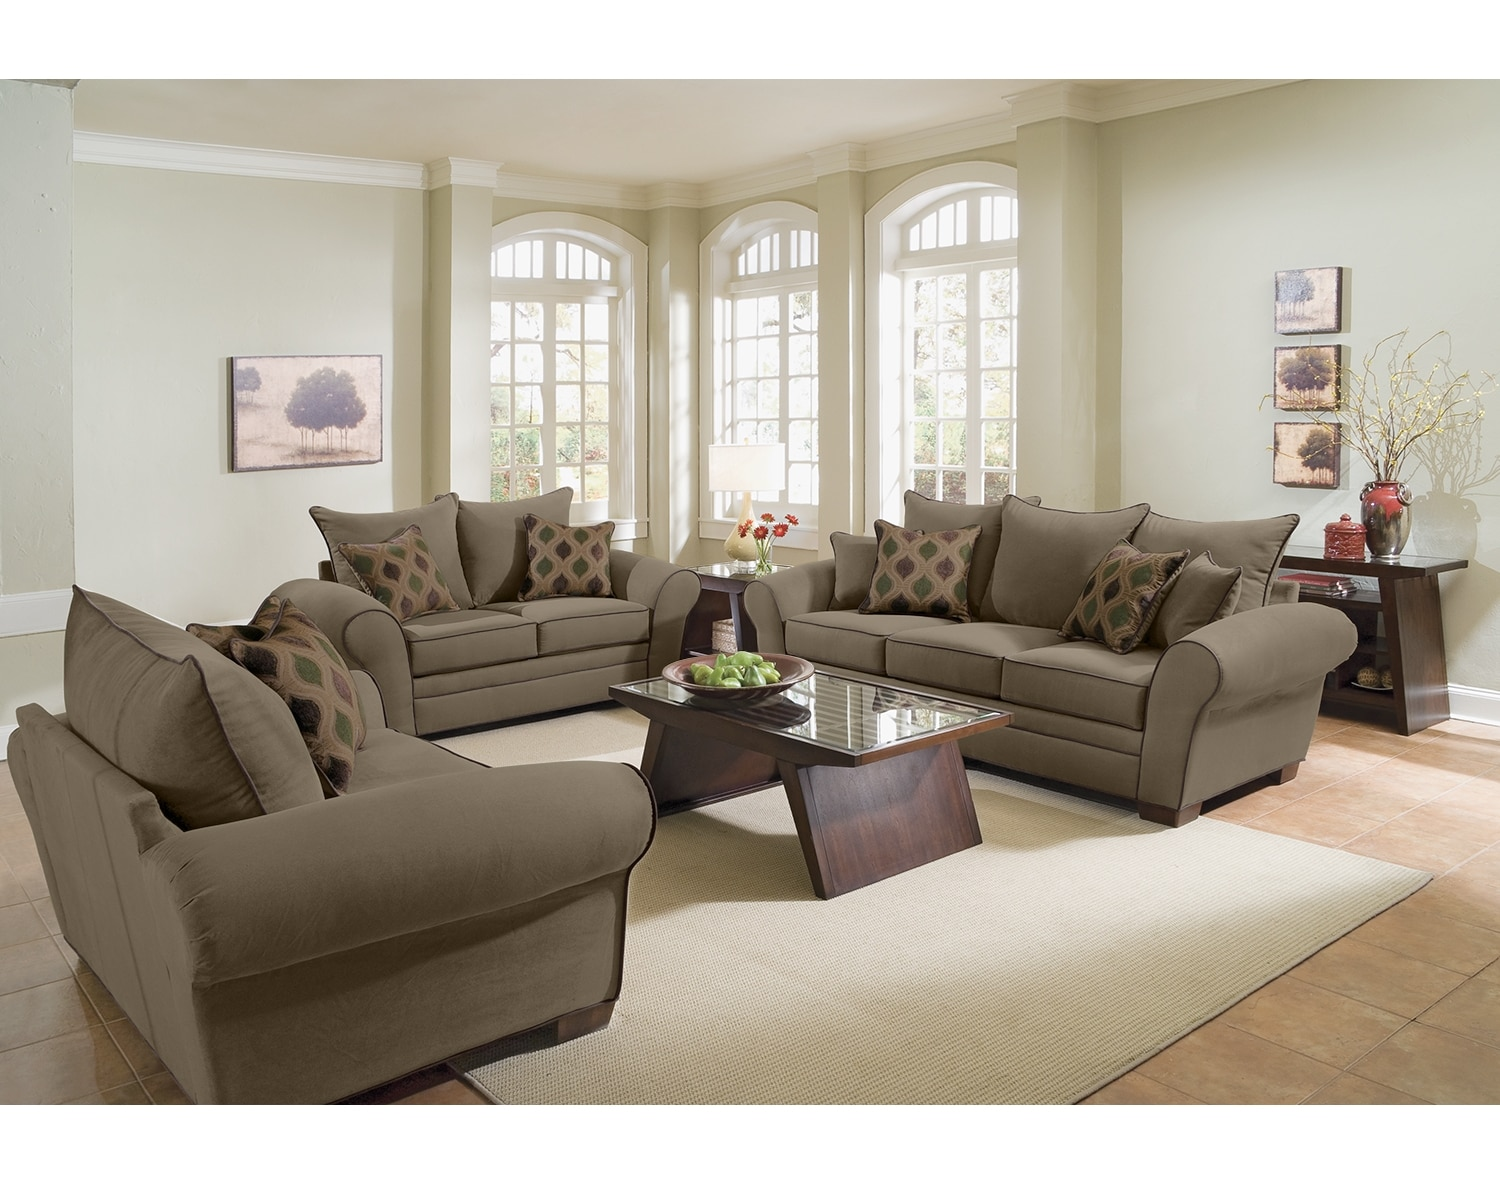 Living Room Collections  American Signature Furniture. Livingroom Wall Art. Living Room Club Las Olas. Living Room Furniture Stores In Dallas Tx. Living Room Ouse Bridge York. Living Room Carpets On Sale. Living Room Black Lamps. Kitchen Collection Coupon Codes. Living Room Furniture Low Seating